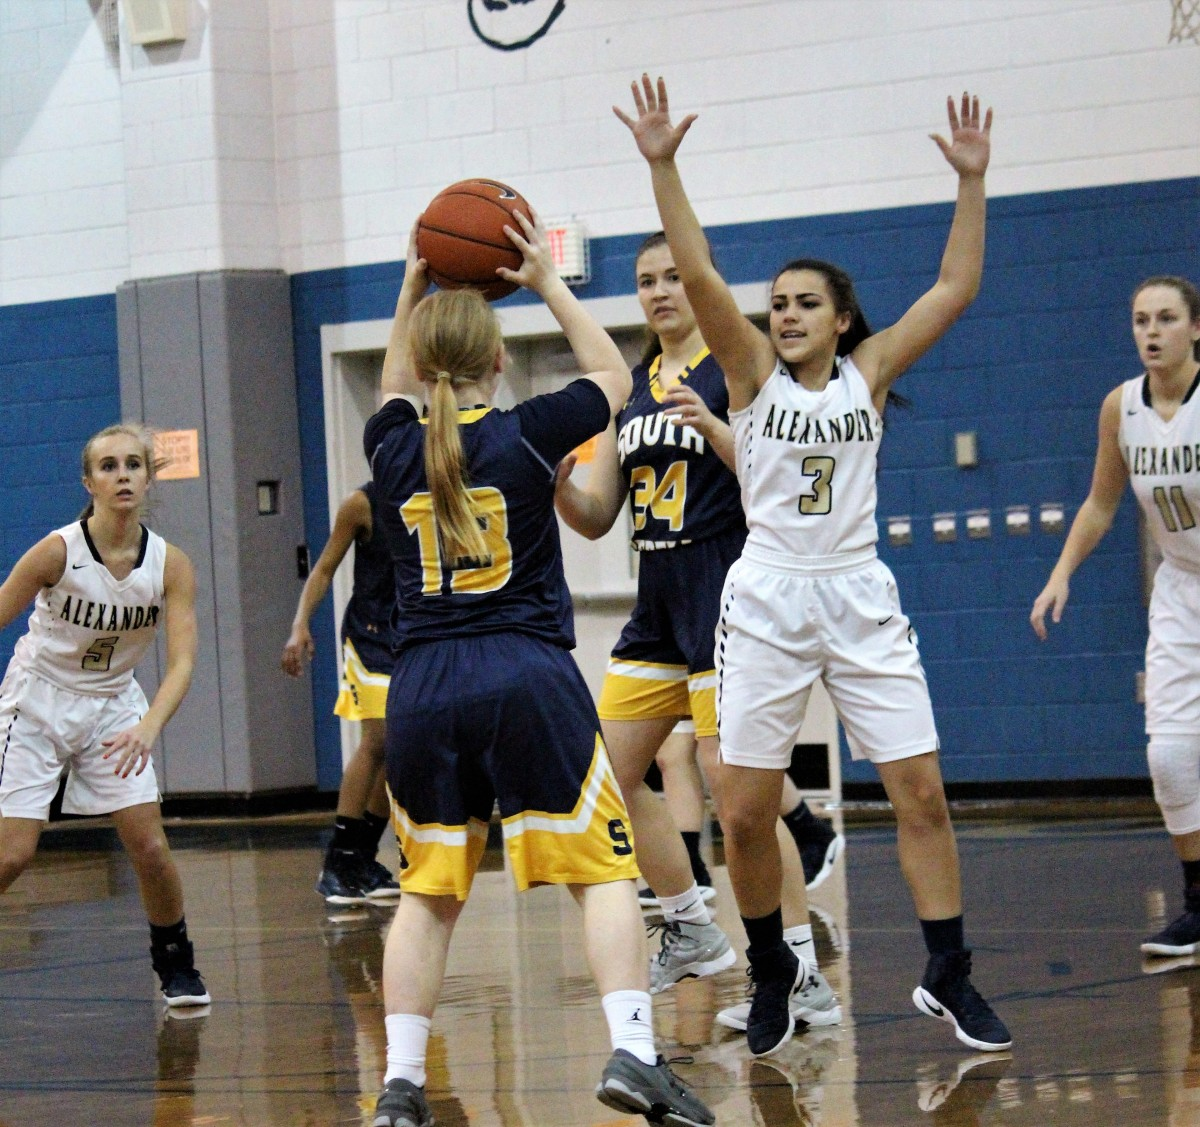 Senior Alexis Anthony defends against a South Iredell player Friday night.